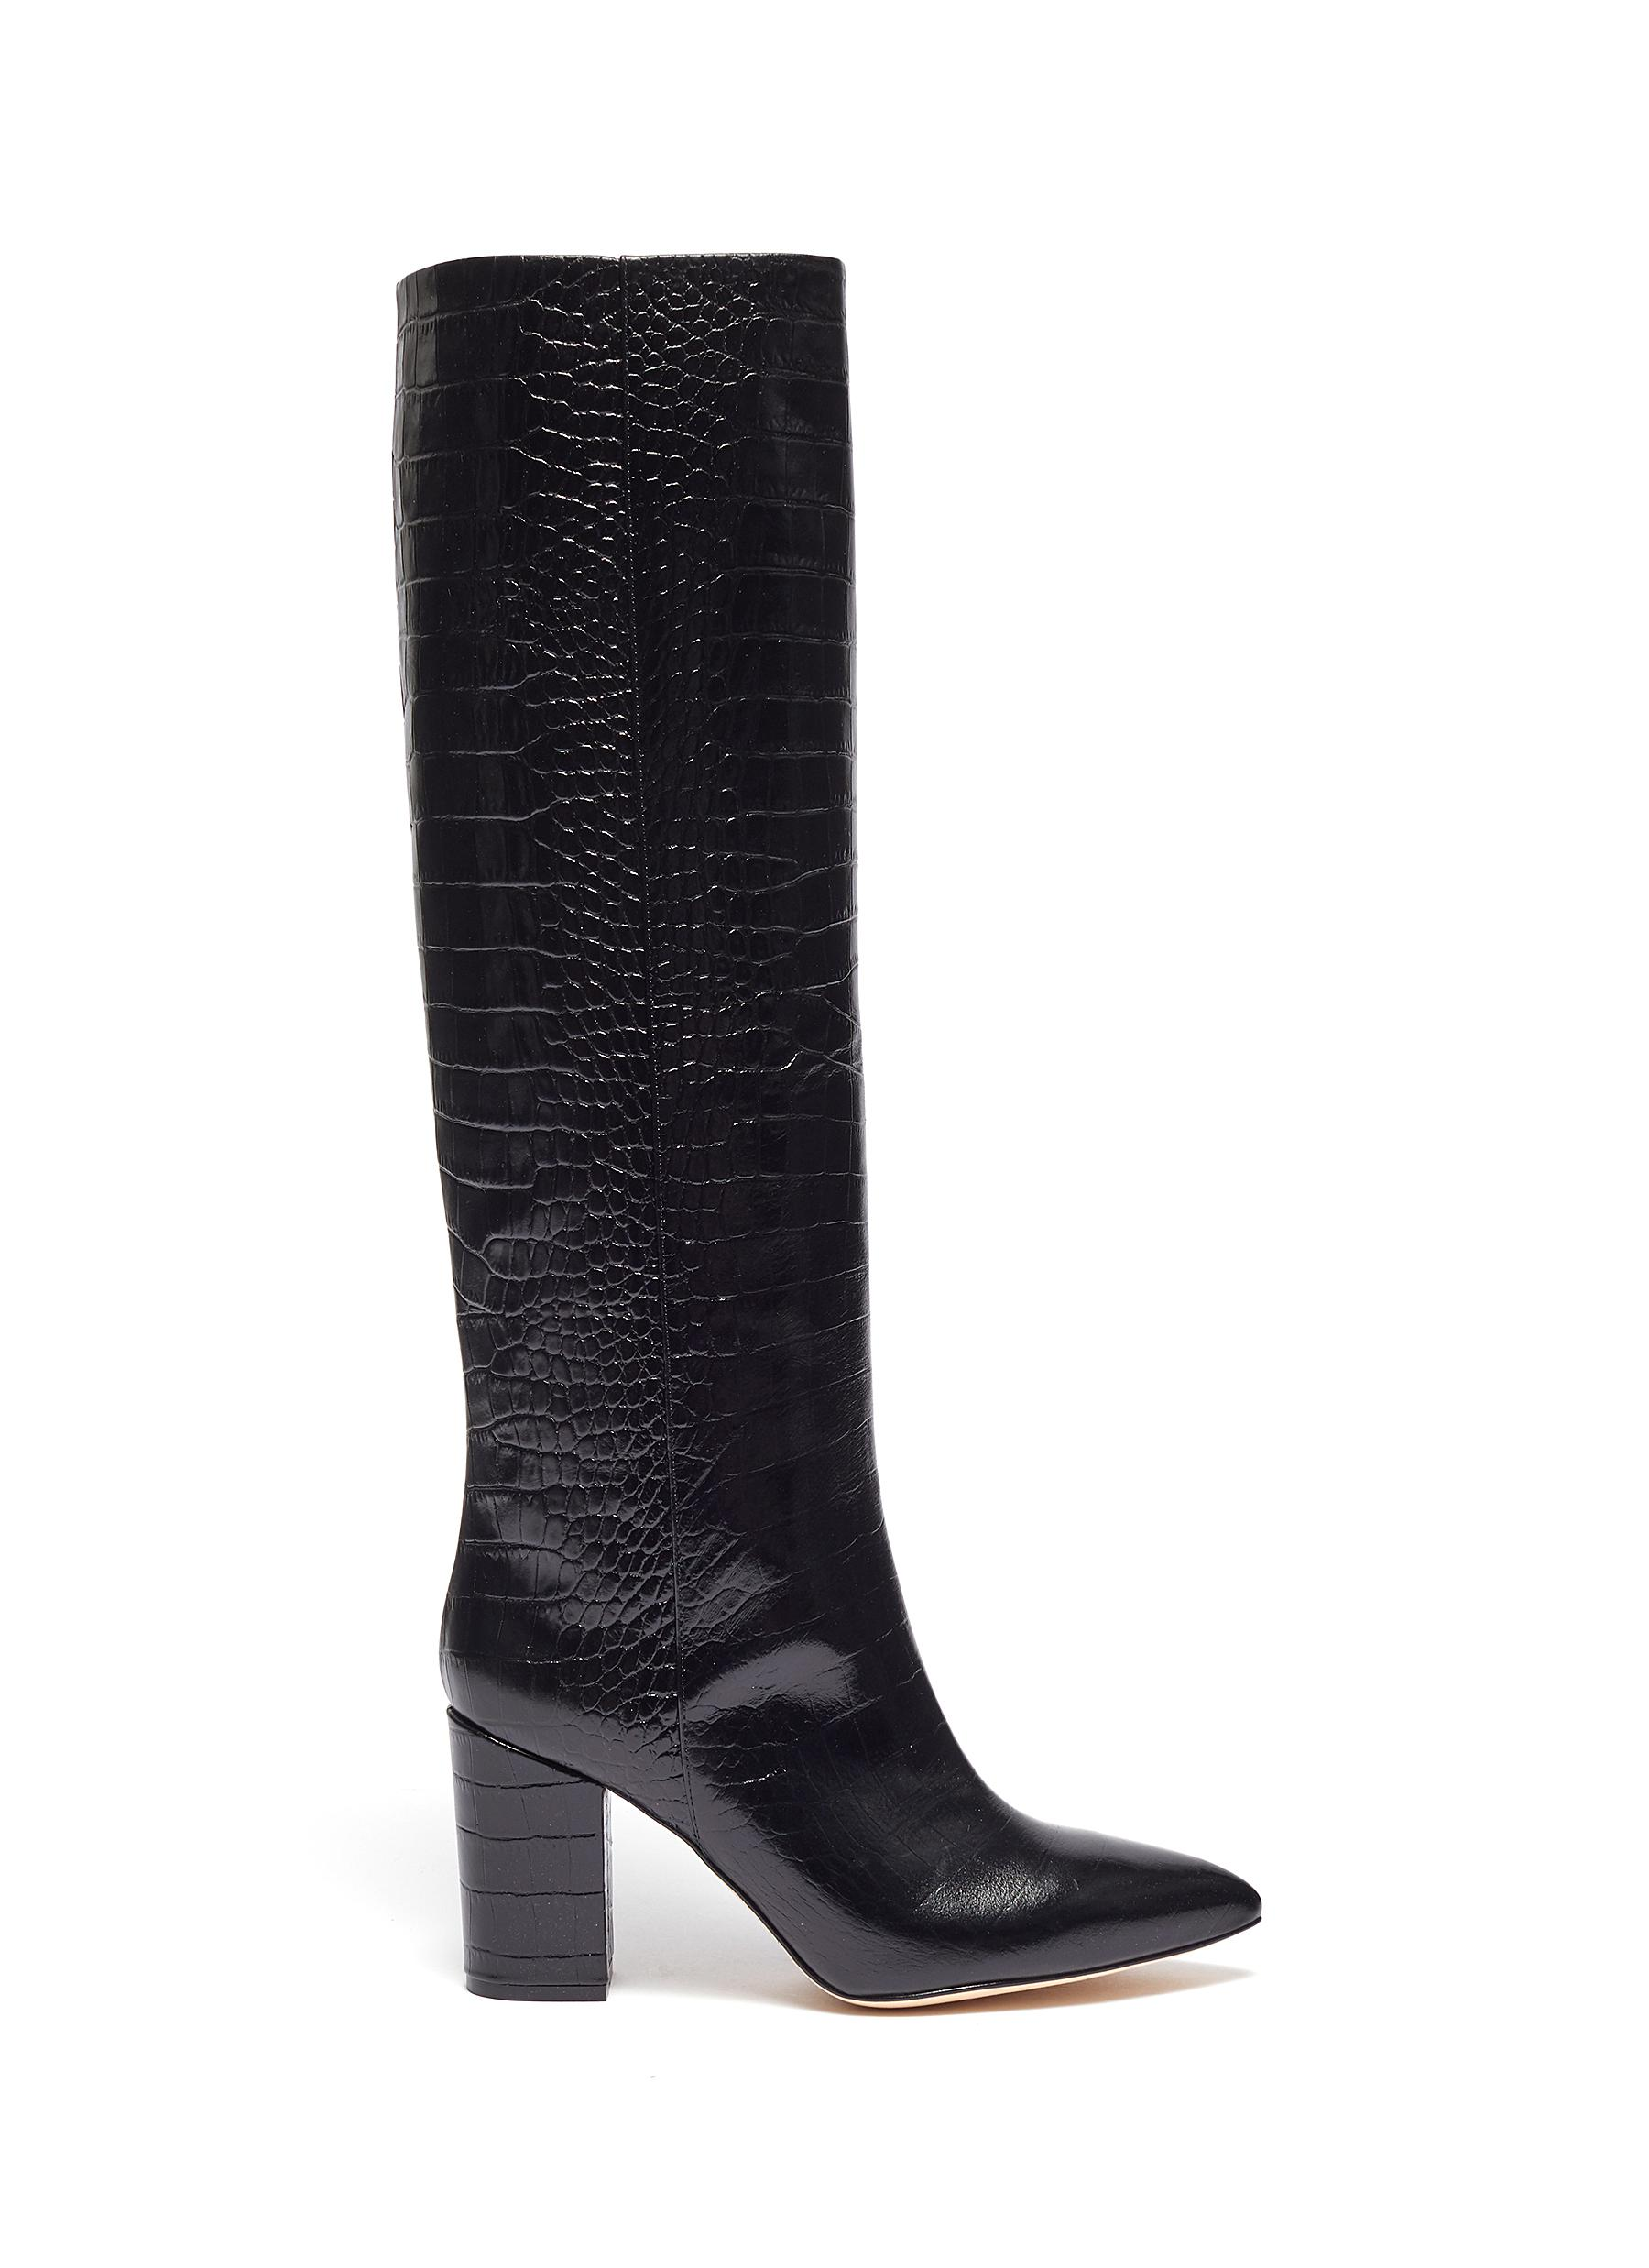 Croc embossed leather knee high boots by Paris Texas